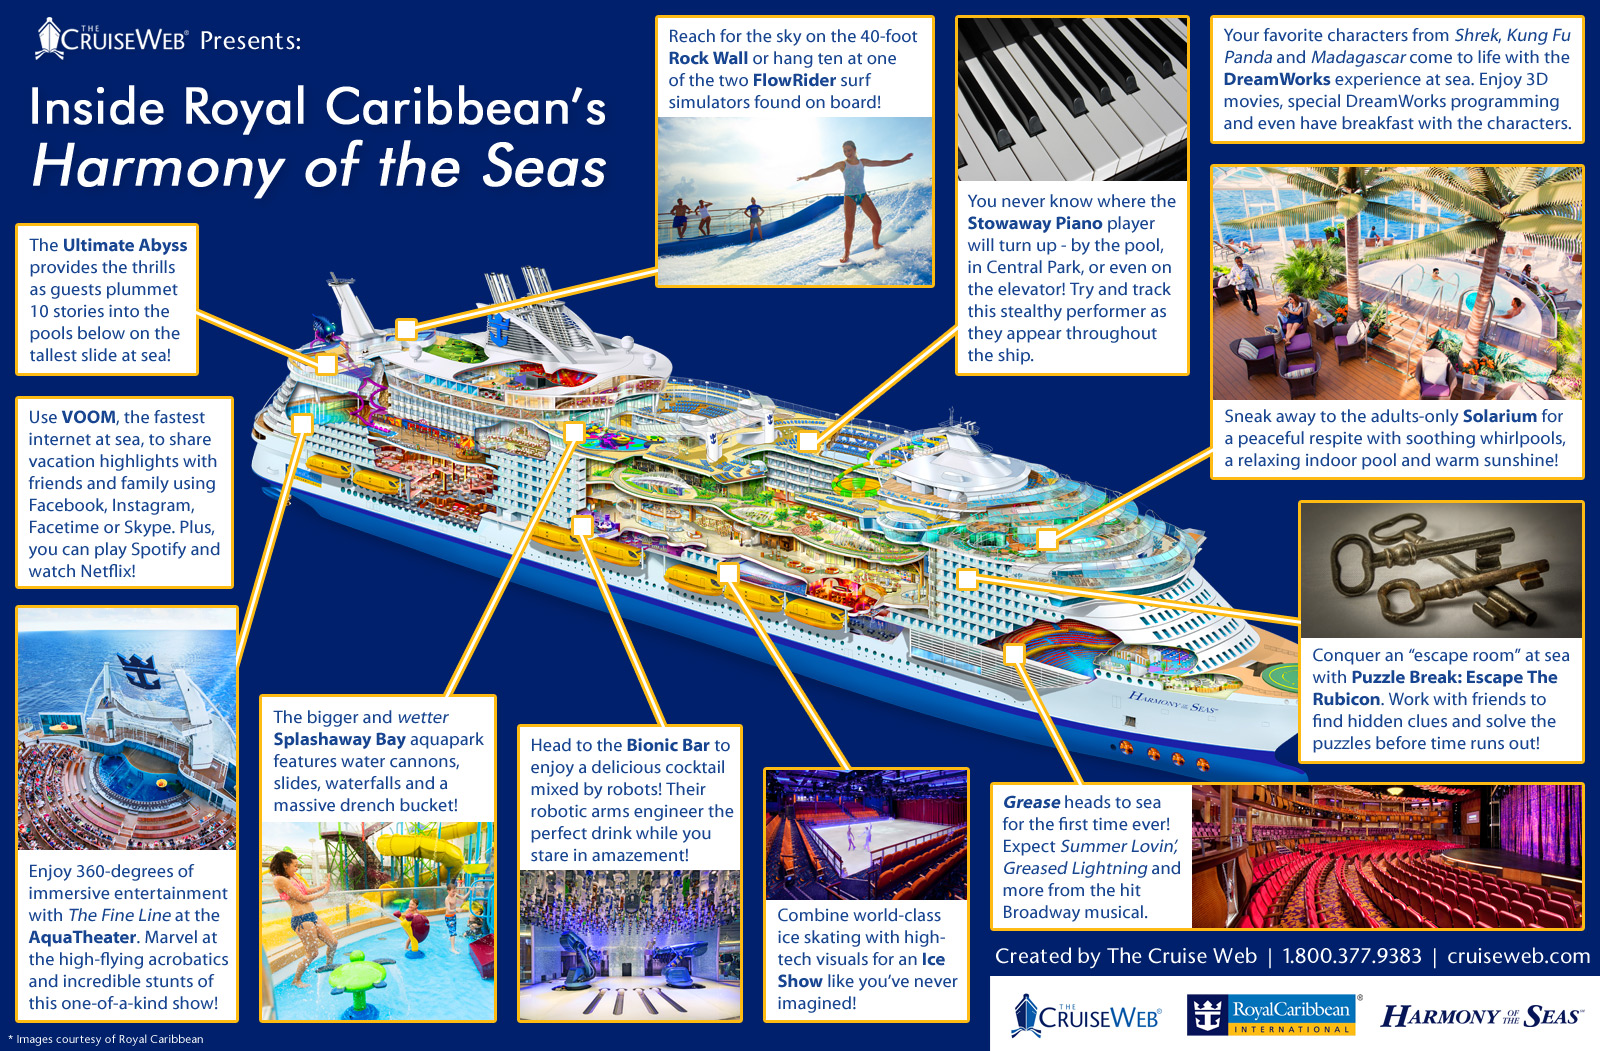 Explore The Beauty Of Caribbean: Royal Caribbean's Harmony Of The Seas Cruise Ship, 2017